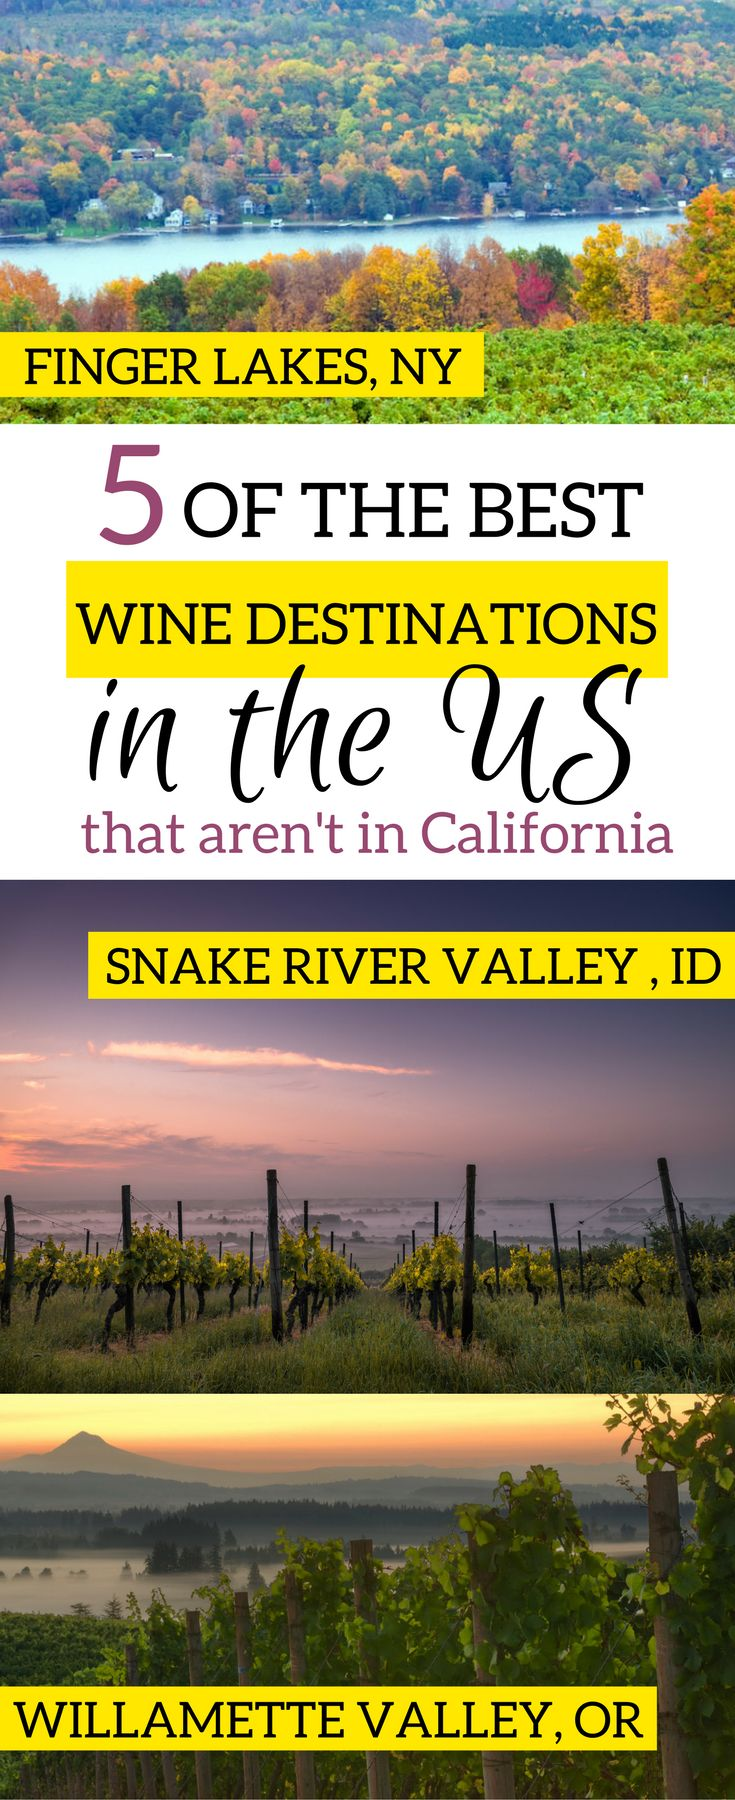 Napa Valley might be the most famous, but it's not the only one. Discover 5 of the best wine regions in the US, which include Finger Lakes, Snake River Valley, and more. Discover the best wineries and 5 incredible wine trails that are absolutely worth a weekend away. | Wine destinations in the United States | #winetour #winedestinations - via @elainschoch